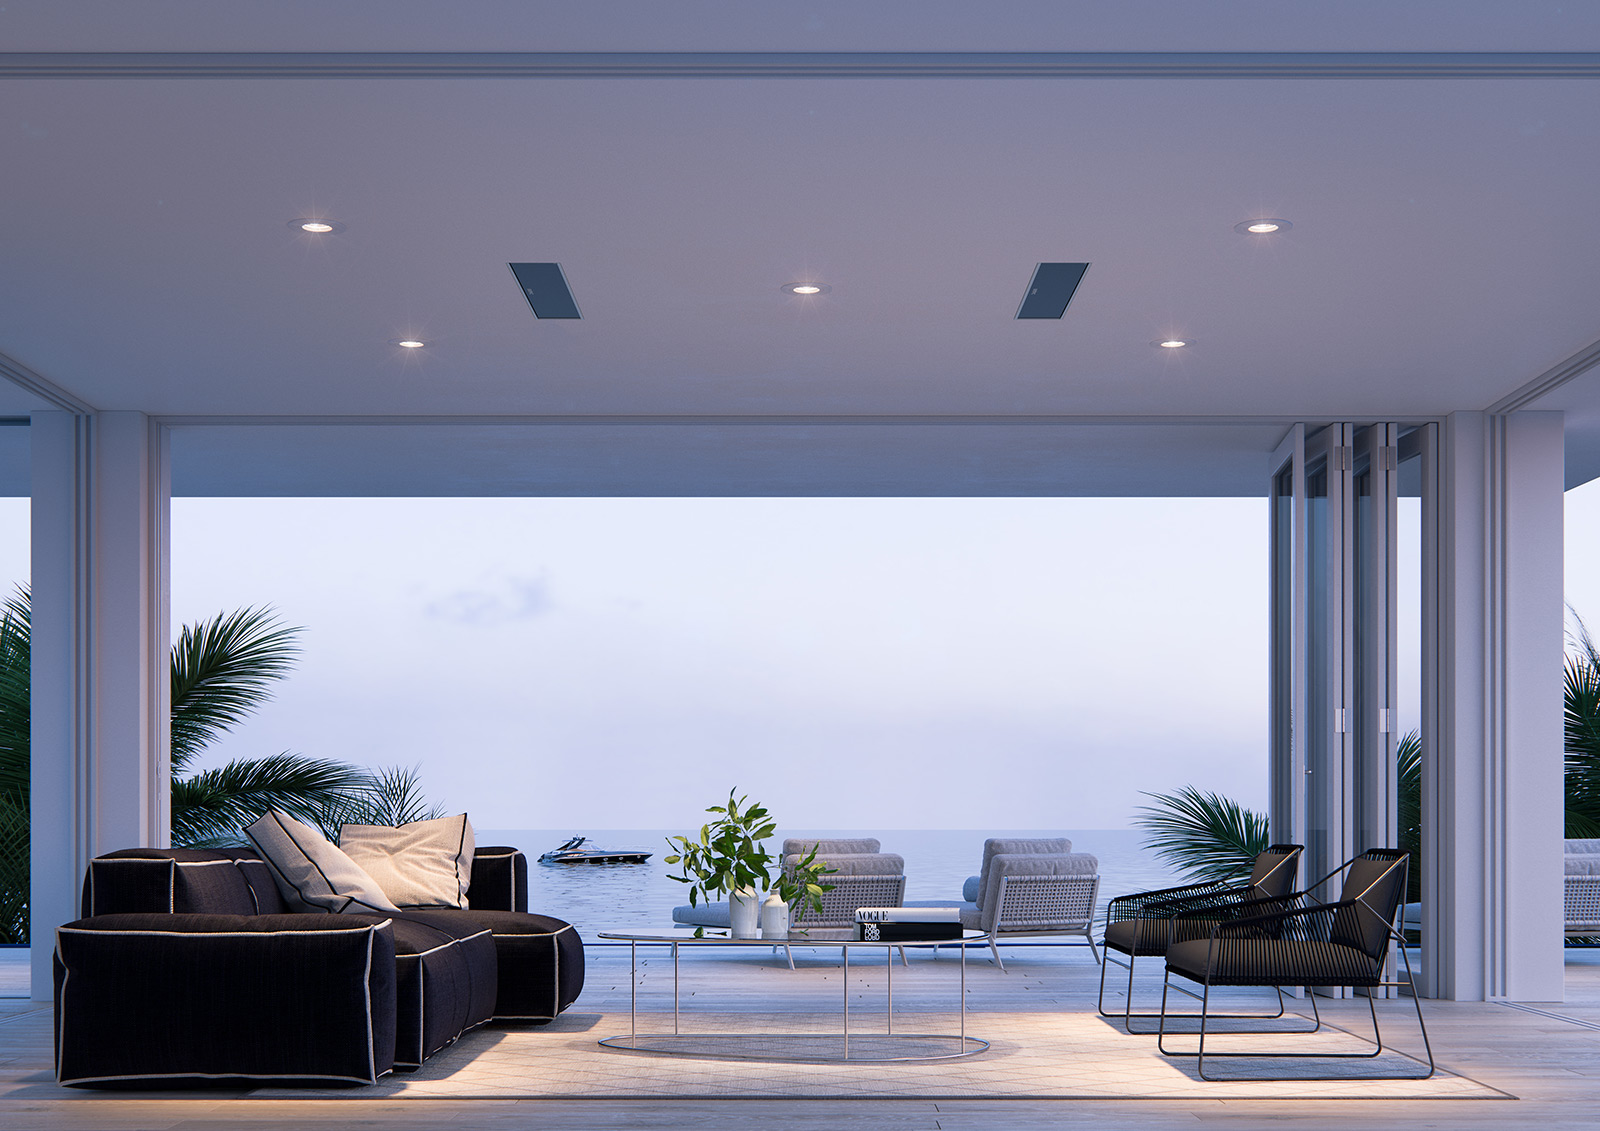 ScreenAge-architectural-product-visualisation-heating